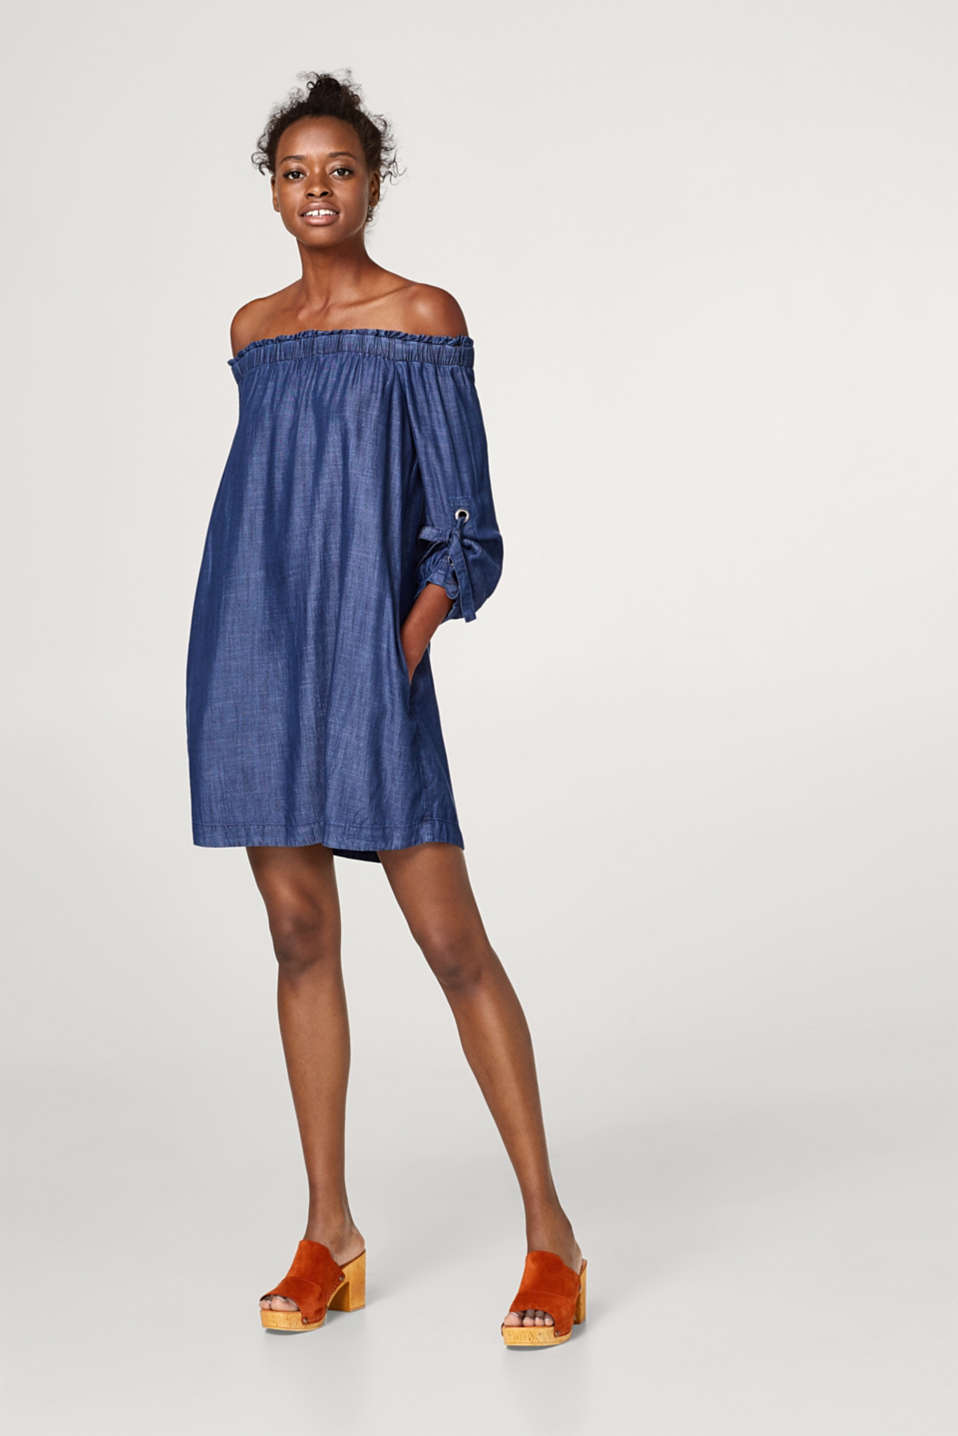 Off-the-shoulder dress made of lyocell in a denim look